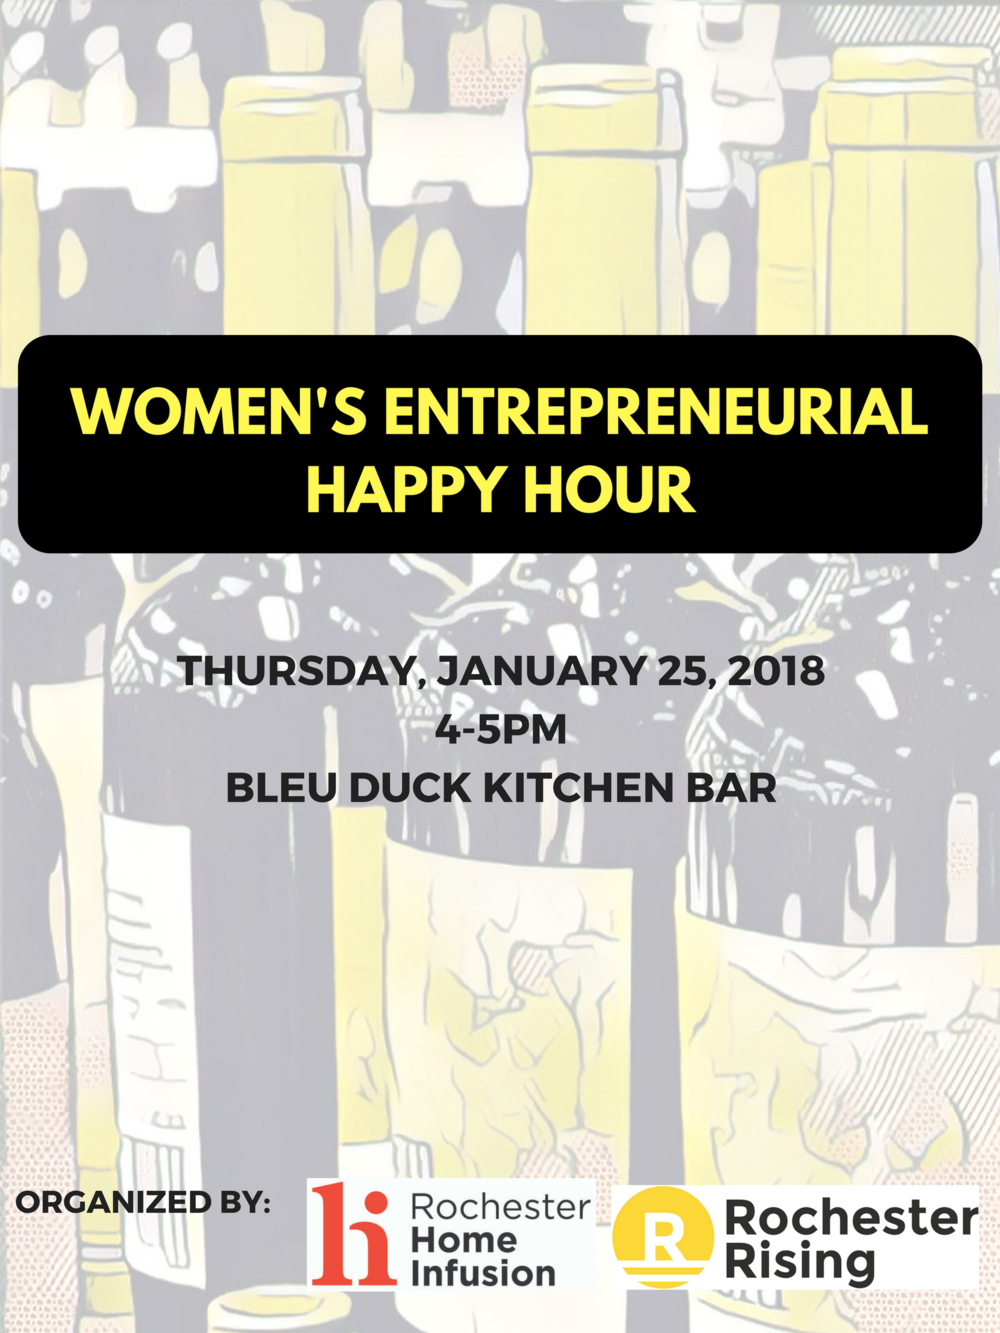 Women's entrepreneurial happy hour.png